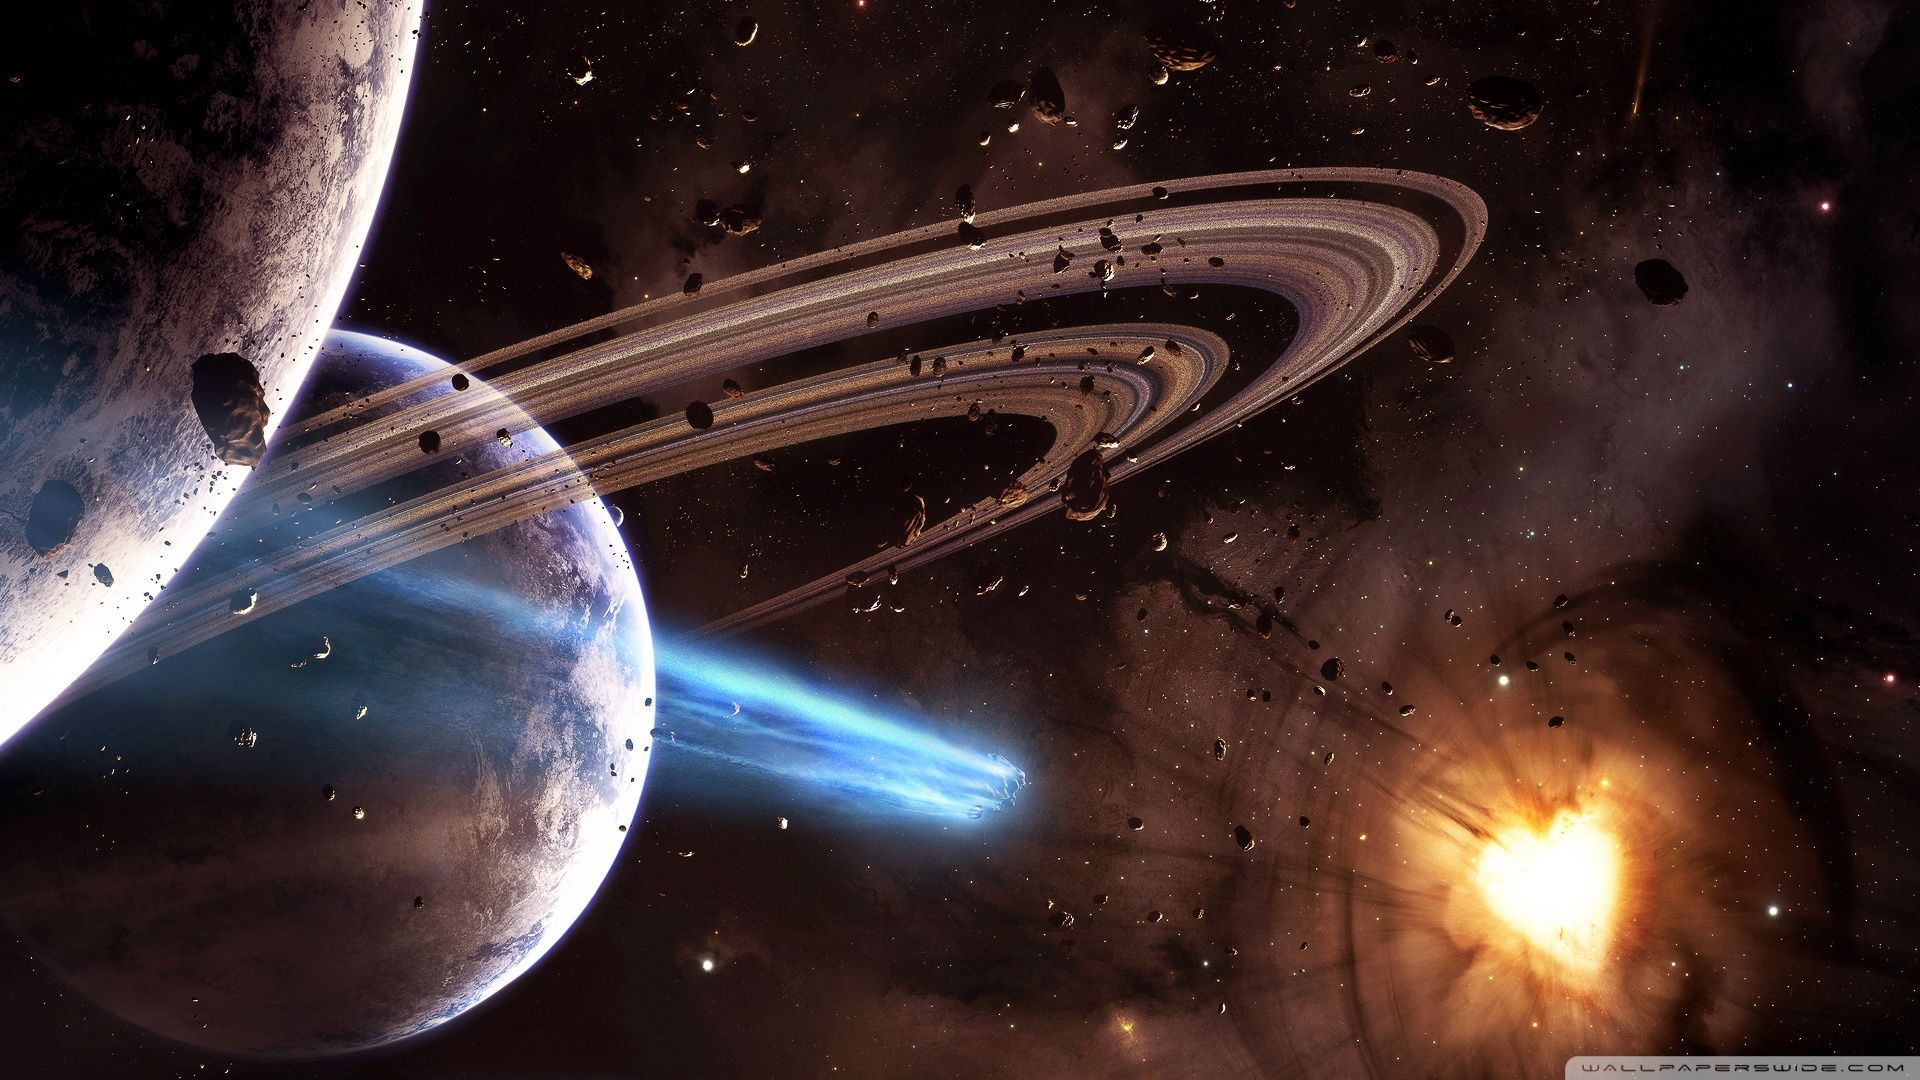 space planets and universe best desktop hd wallpapers high resolution desktop wallpapers pack best space planets and universe wallpapers collection